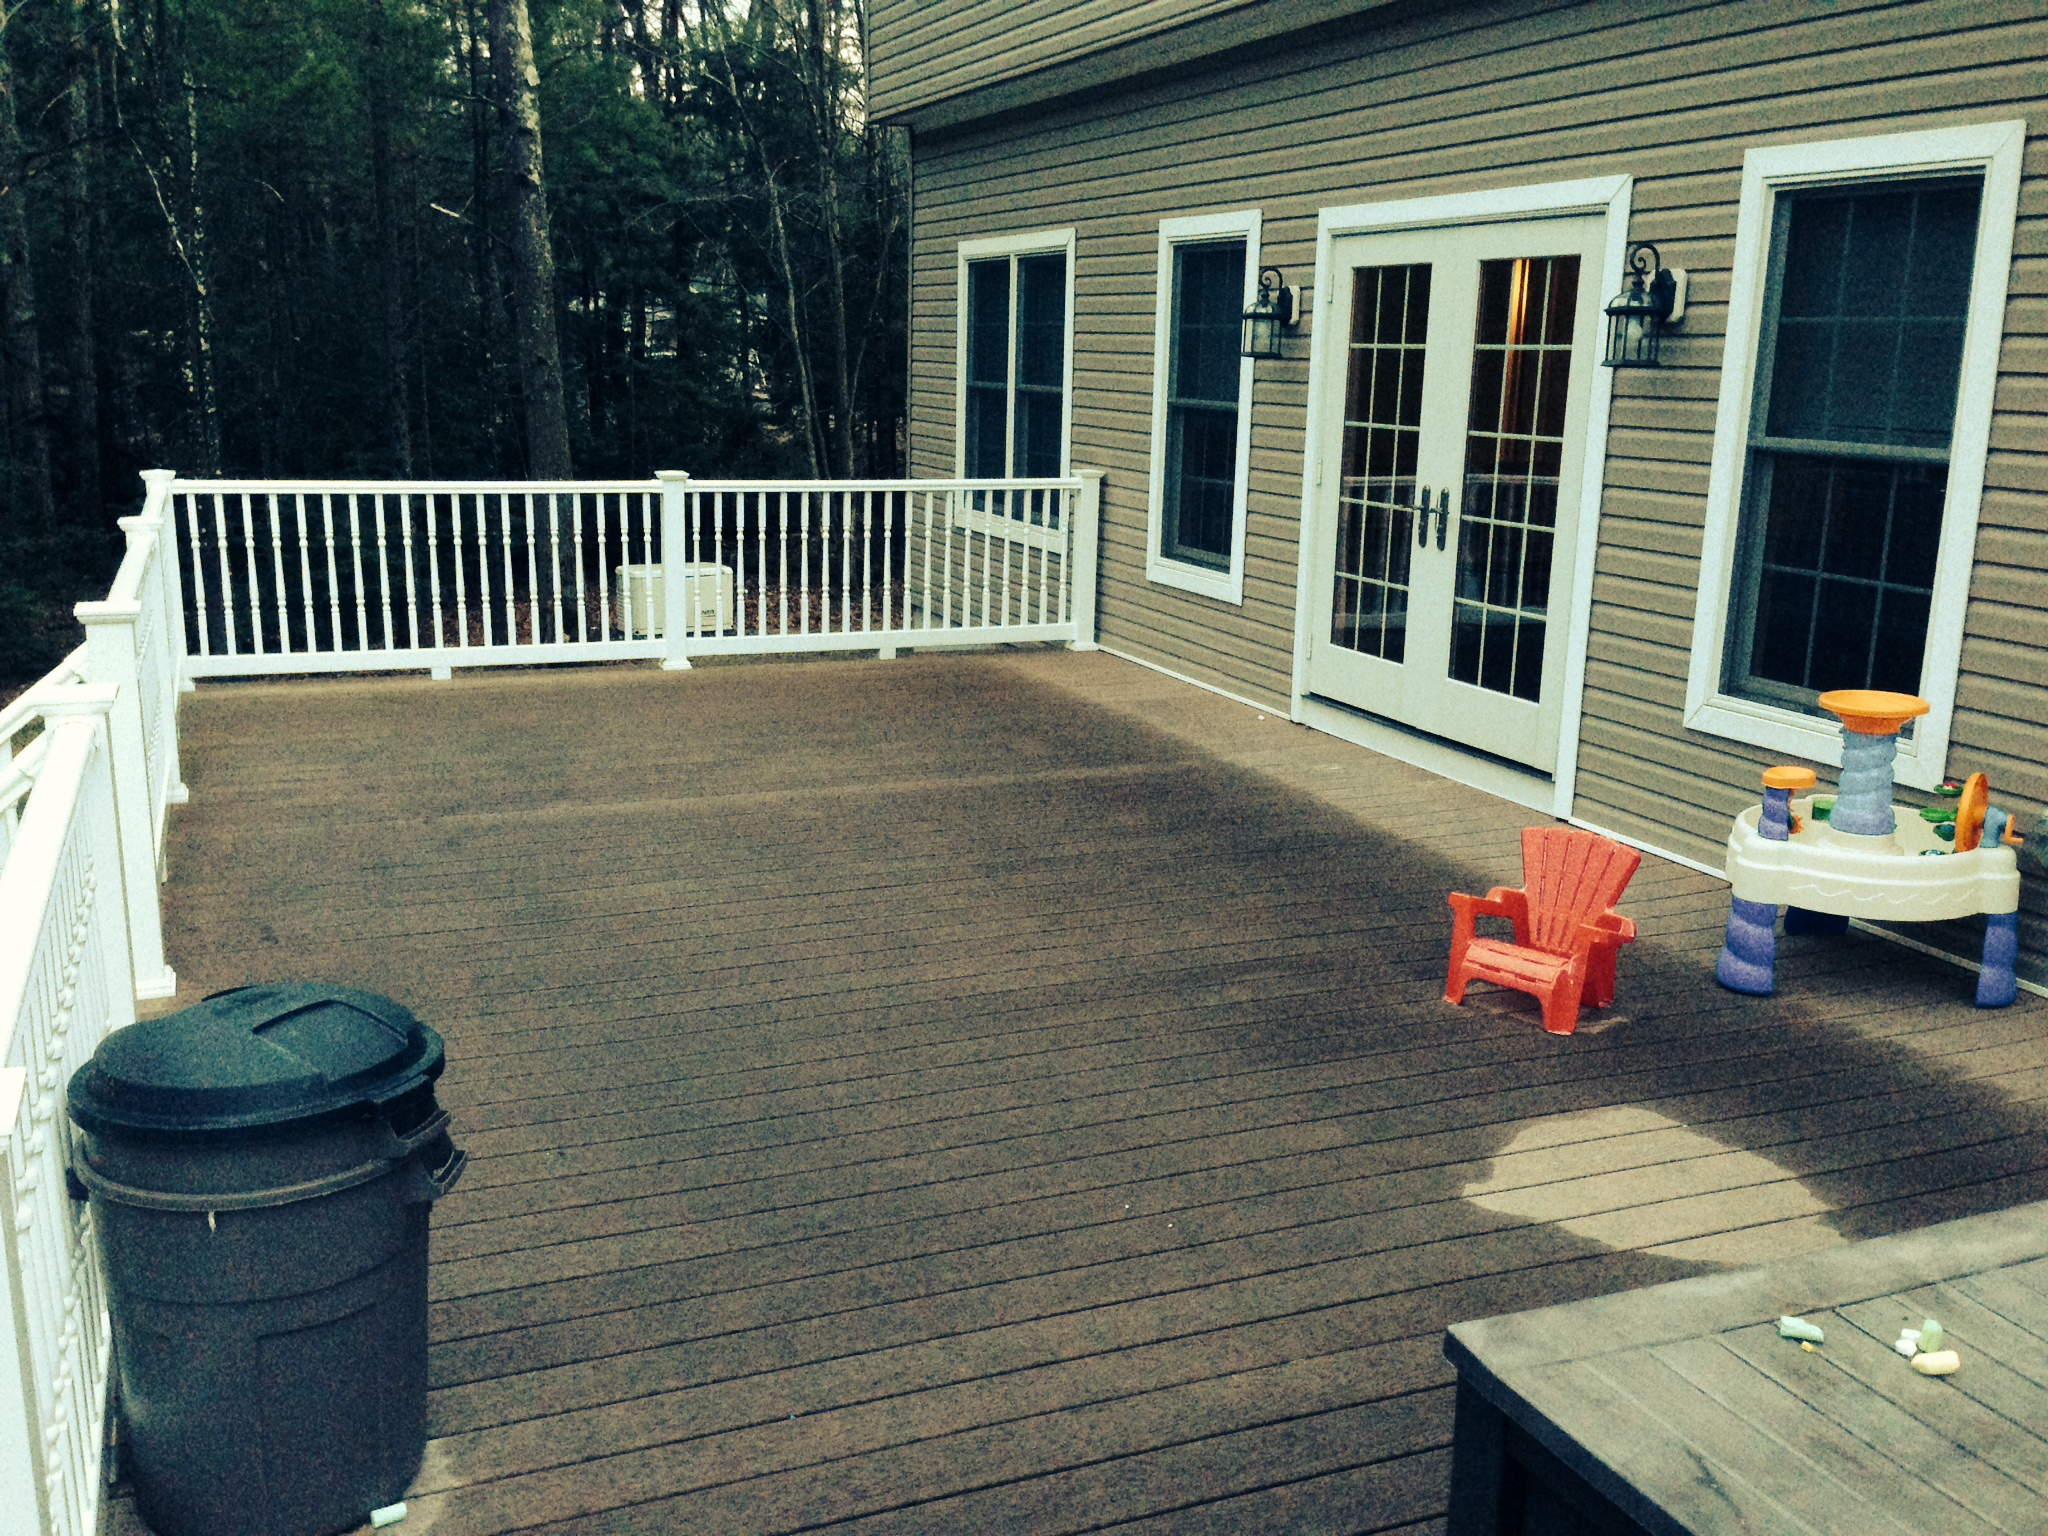 16' x 36' Trex deck - Family of Six (four young children)